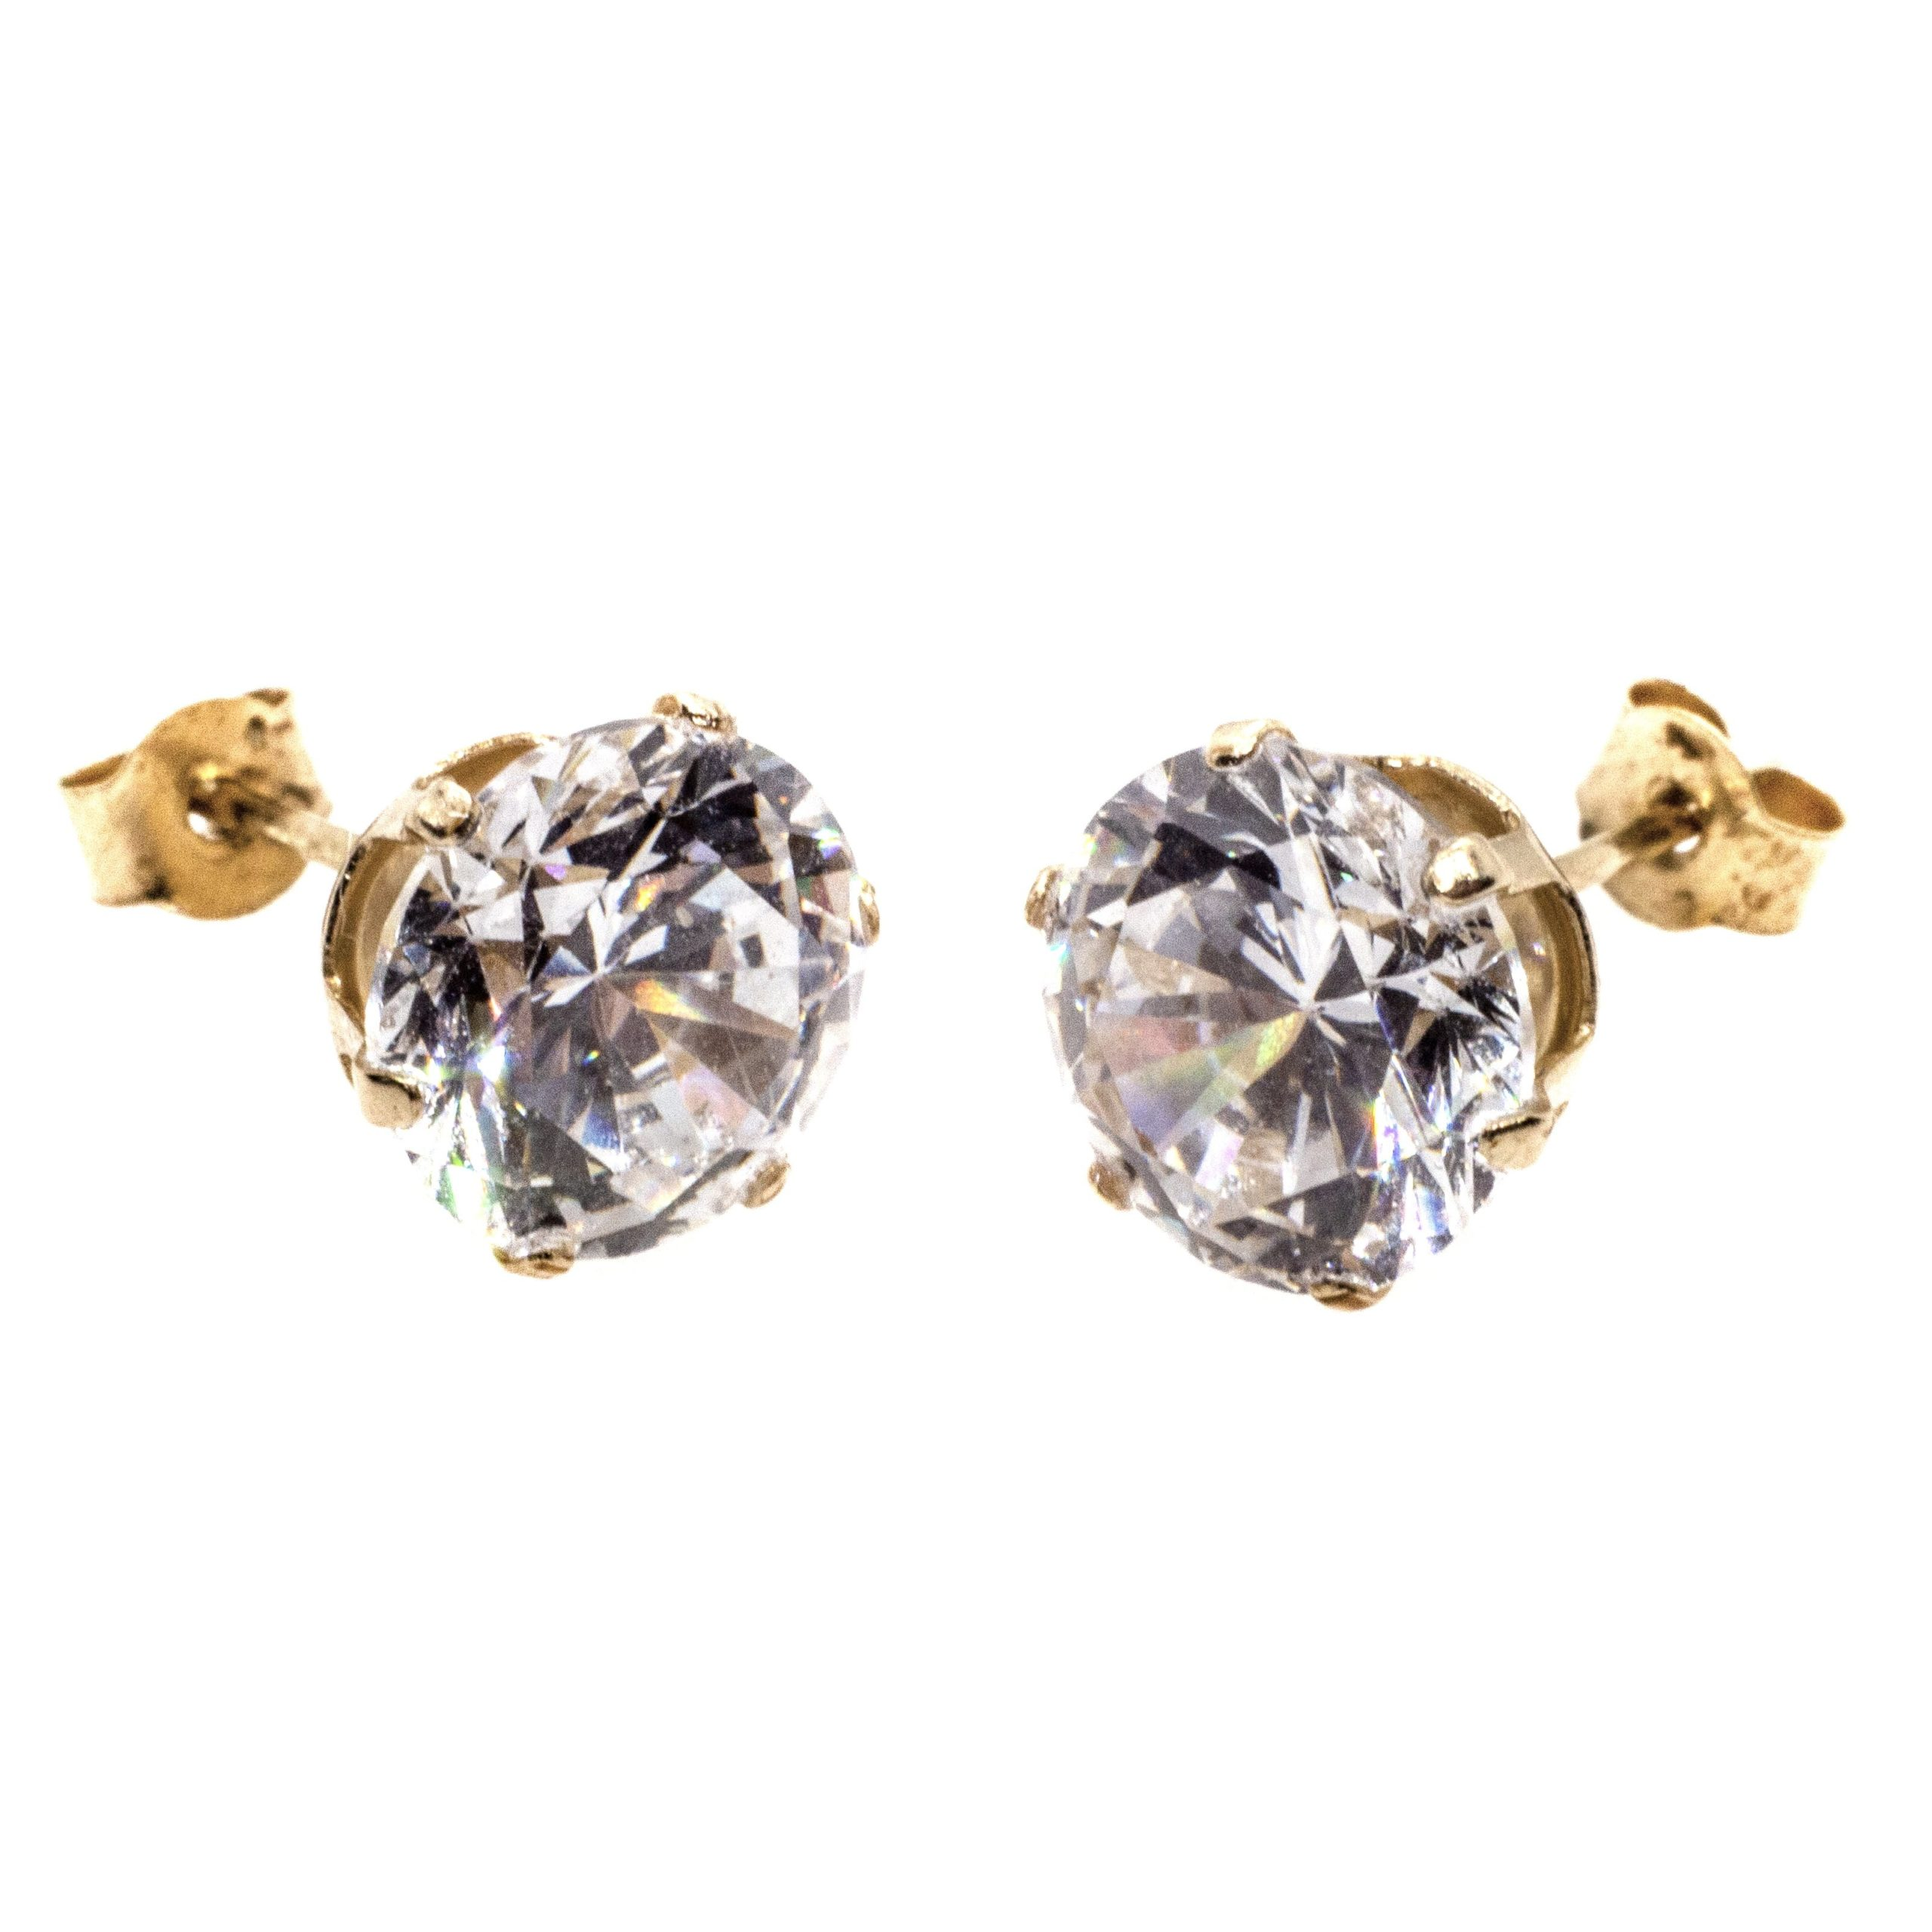 7mm CZ stud earrings 9ct yellow gold